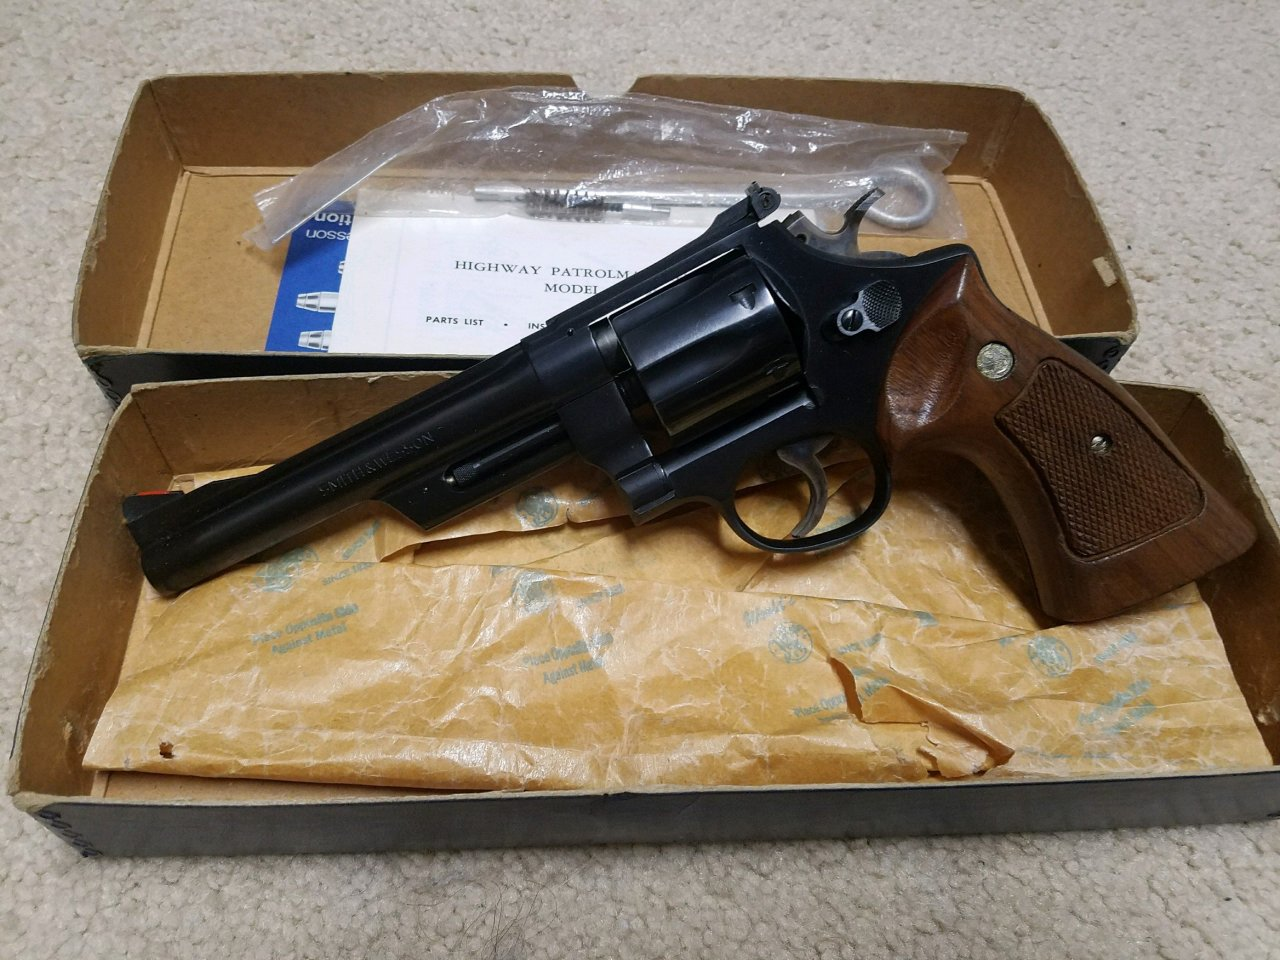 Smith and wesson model 2